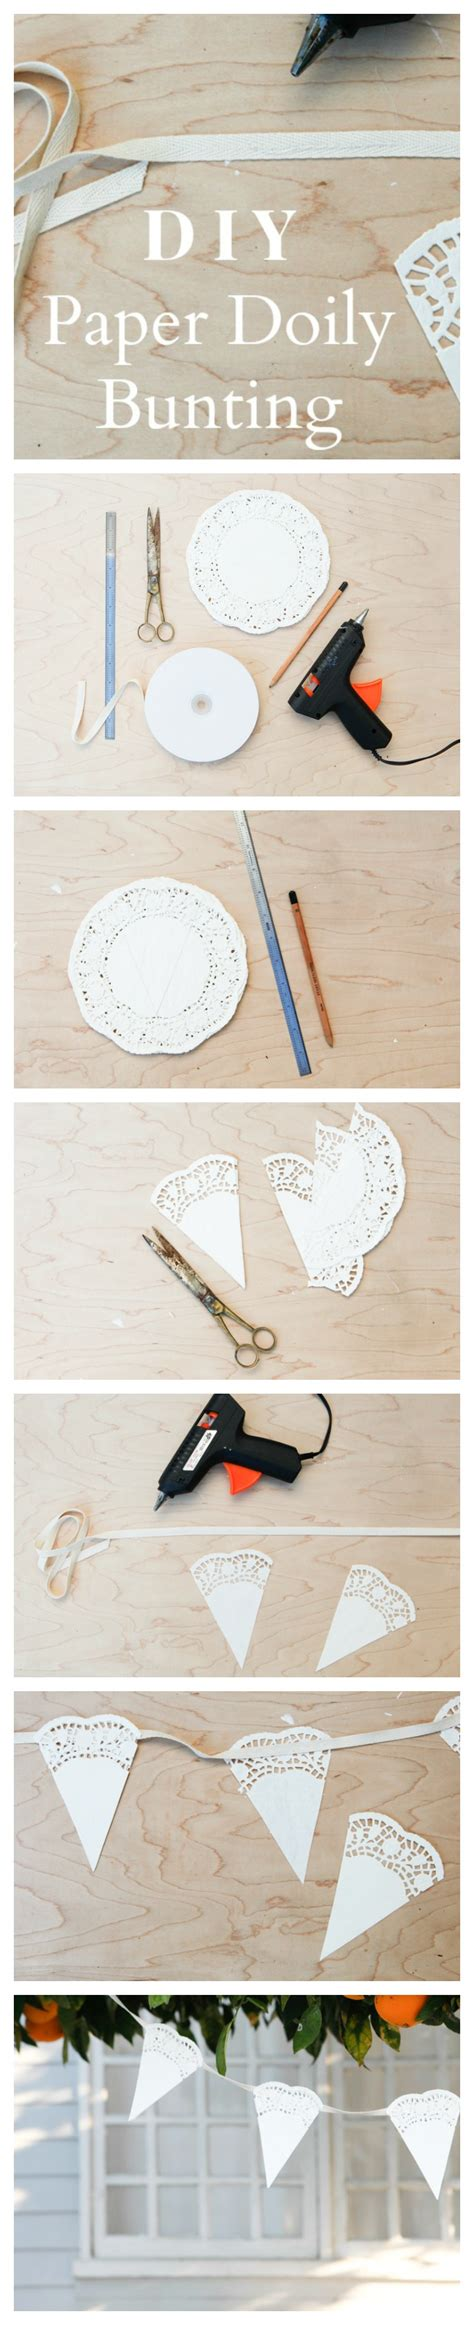 How To Make Doily Paper - how to make paper doily bunting rustic wedding chic